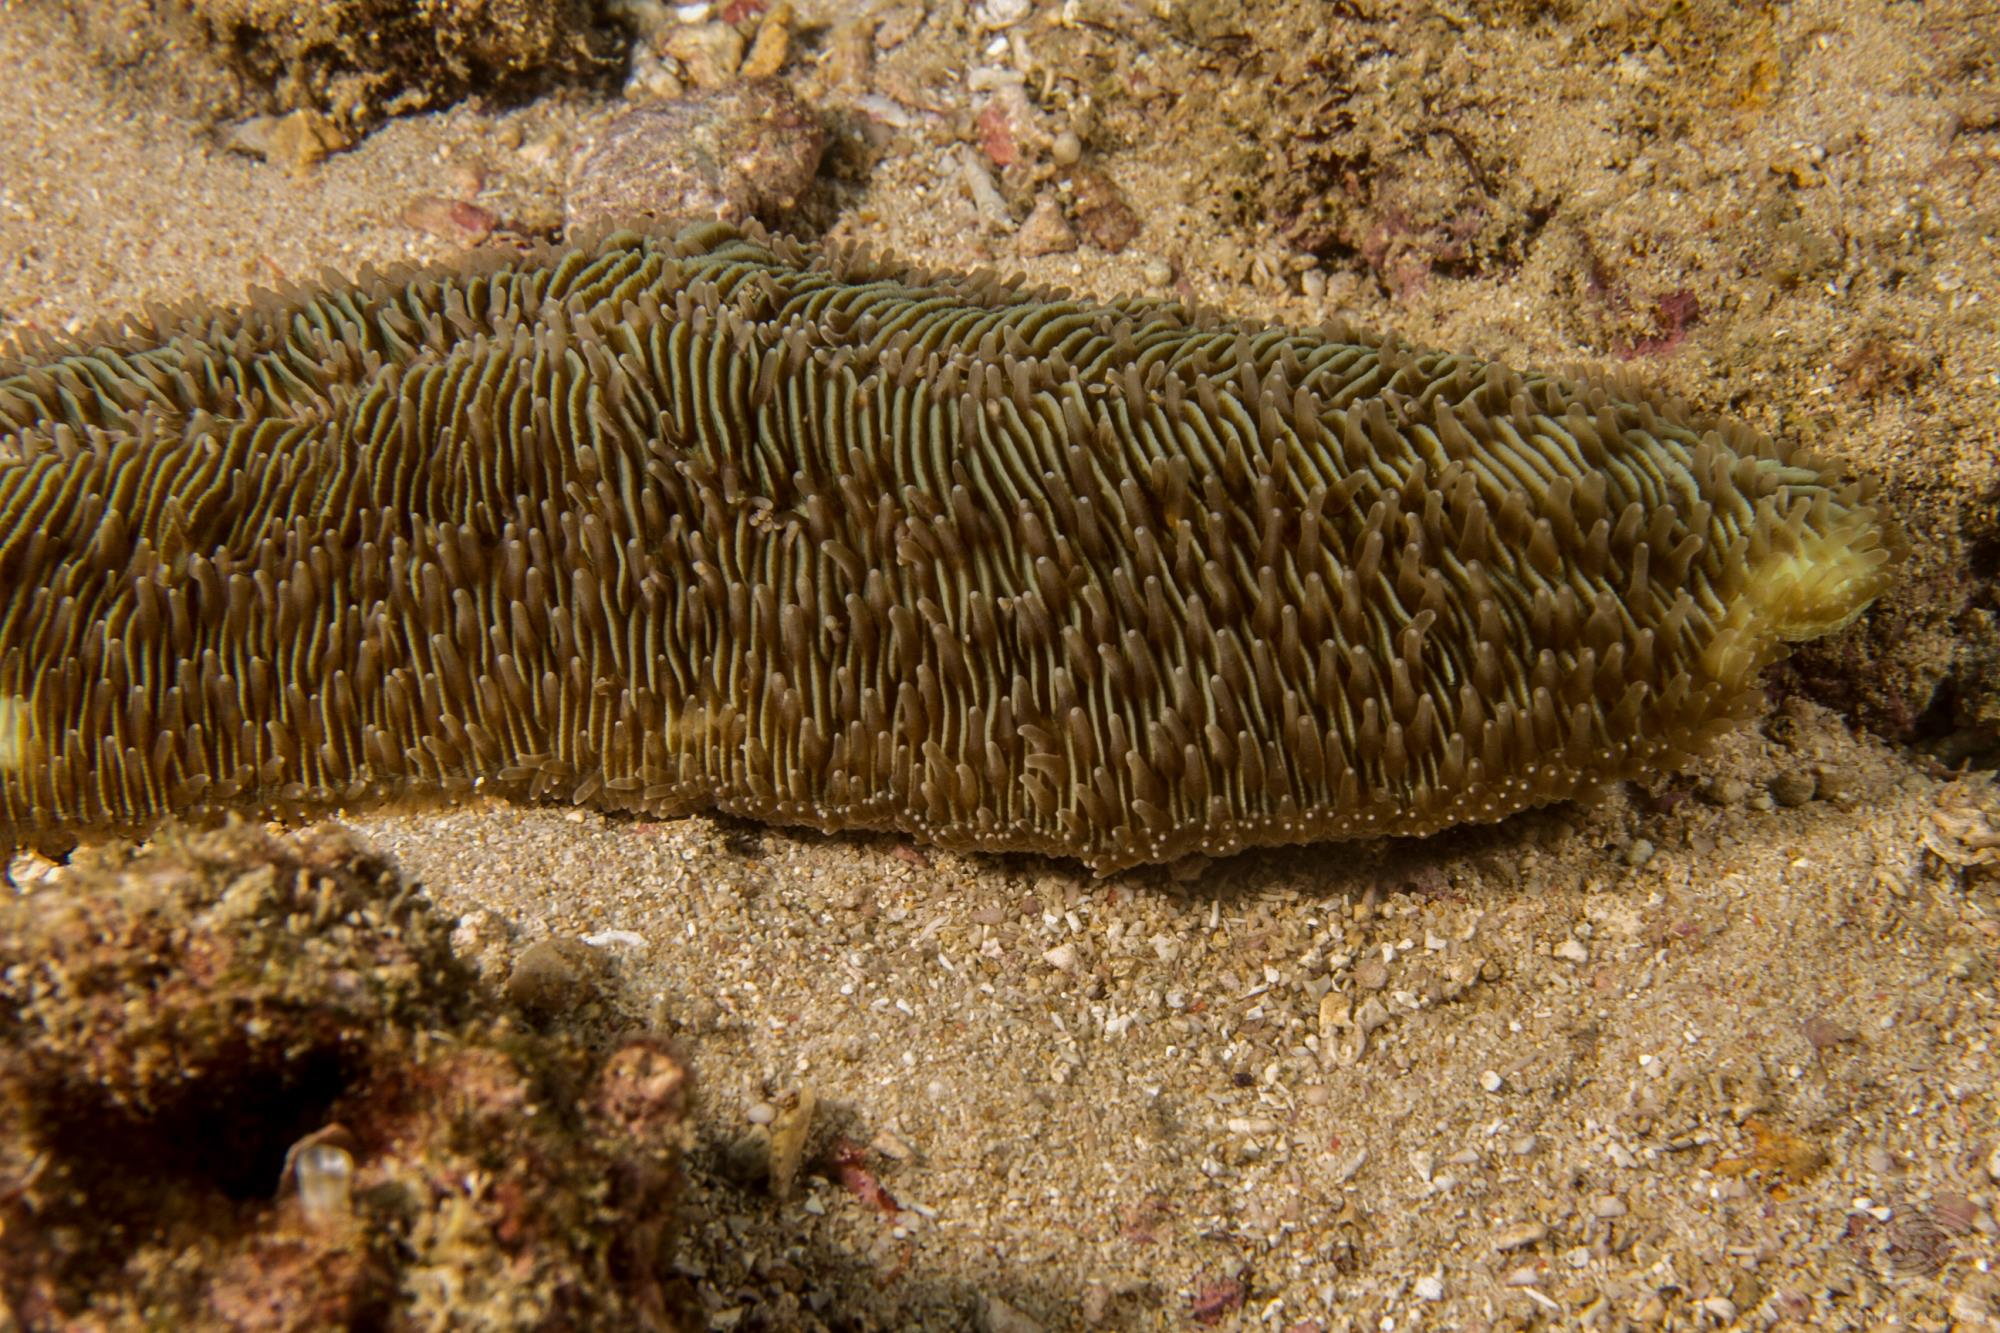 slipper coral (Herpolitha limax)